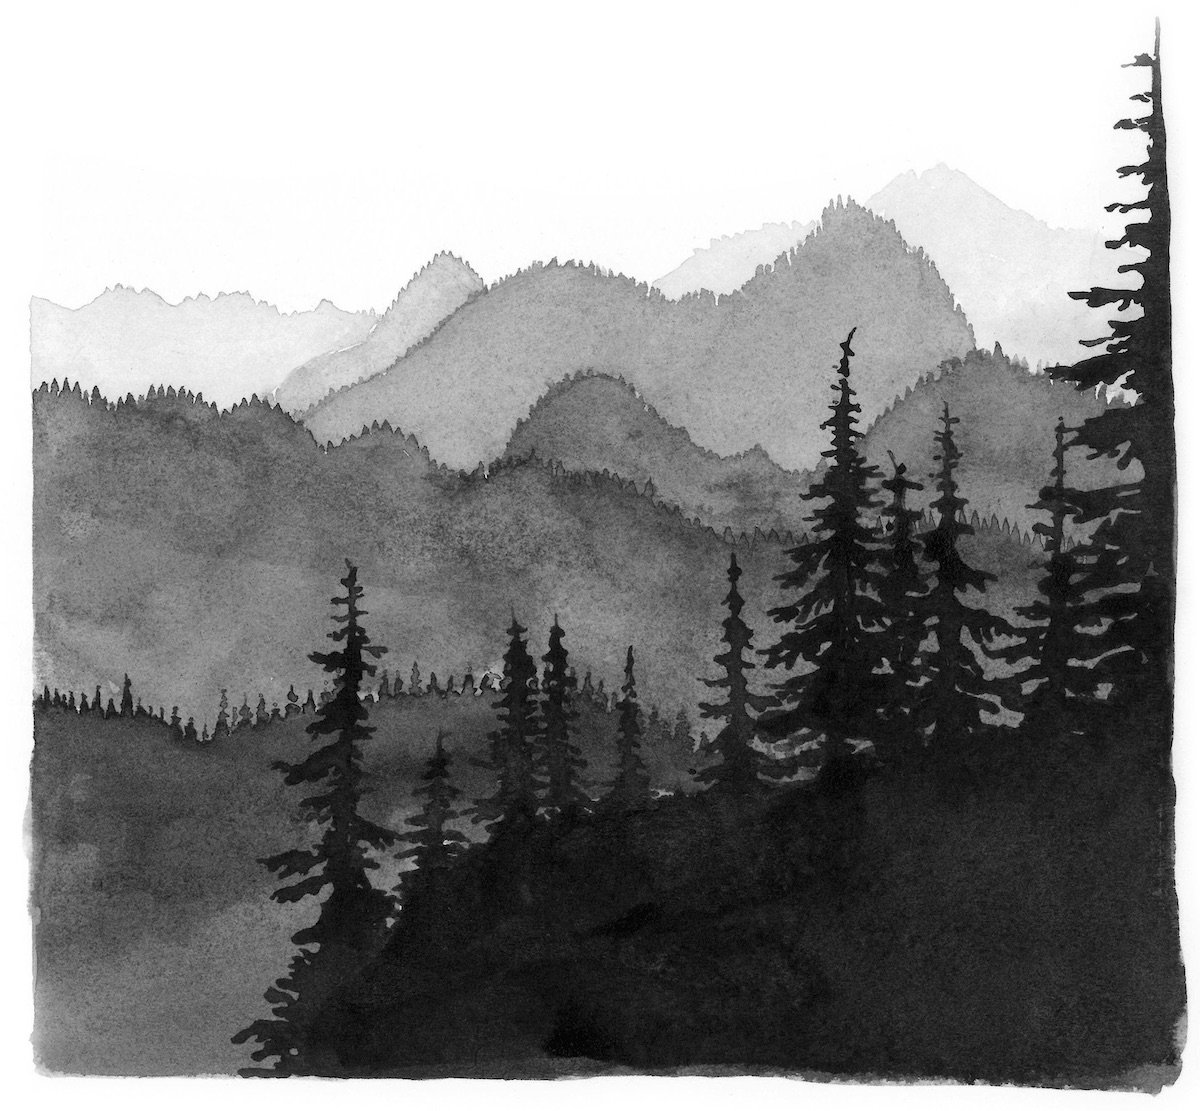 Mountain Range. Justin Gibbens's illustrations appear throughout the book. [Image] Courtesy of Mountaineers Books